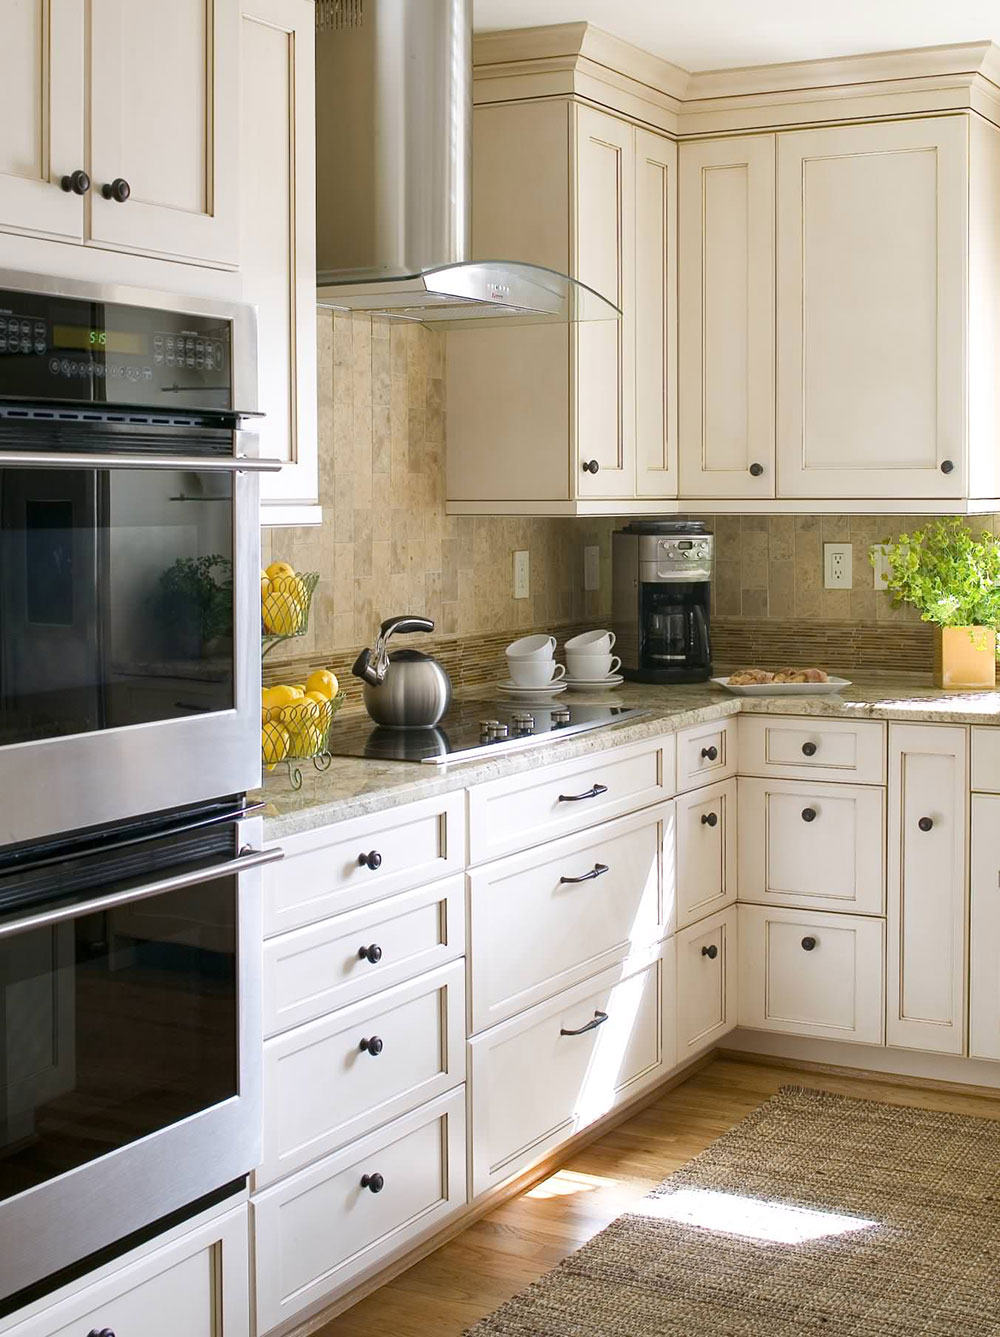 Better-Homes-Gardens-Featured-Kitchen-by-Kitchen-Planners How to update kitchen cabinets without replacing them